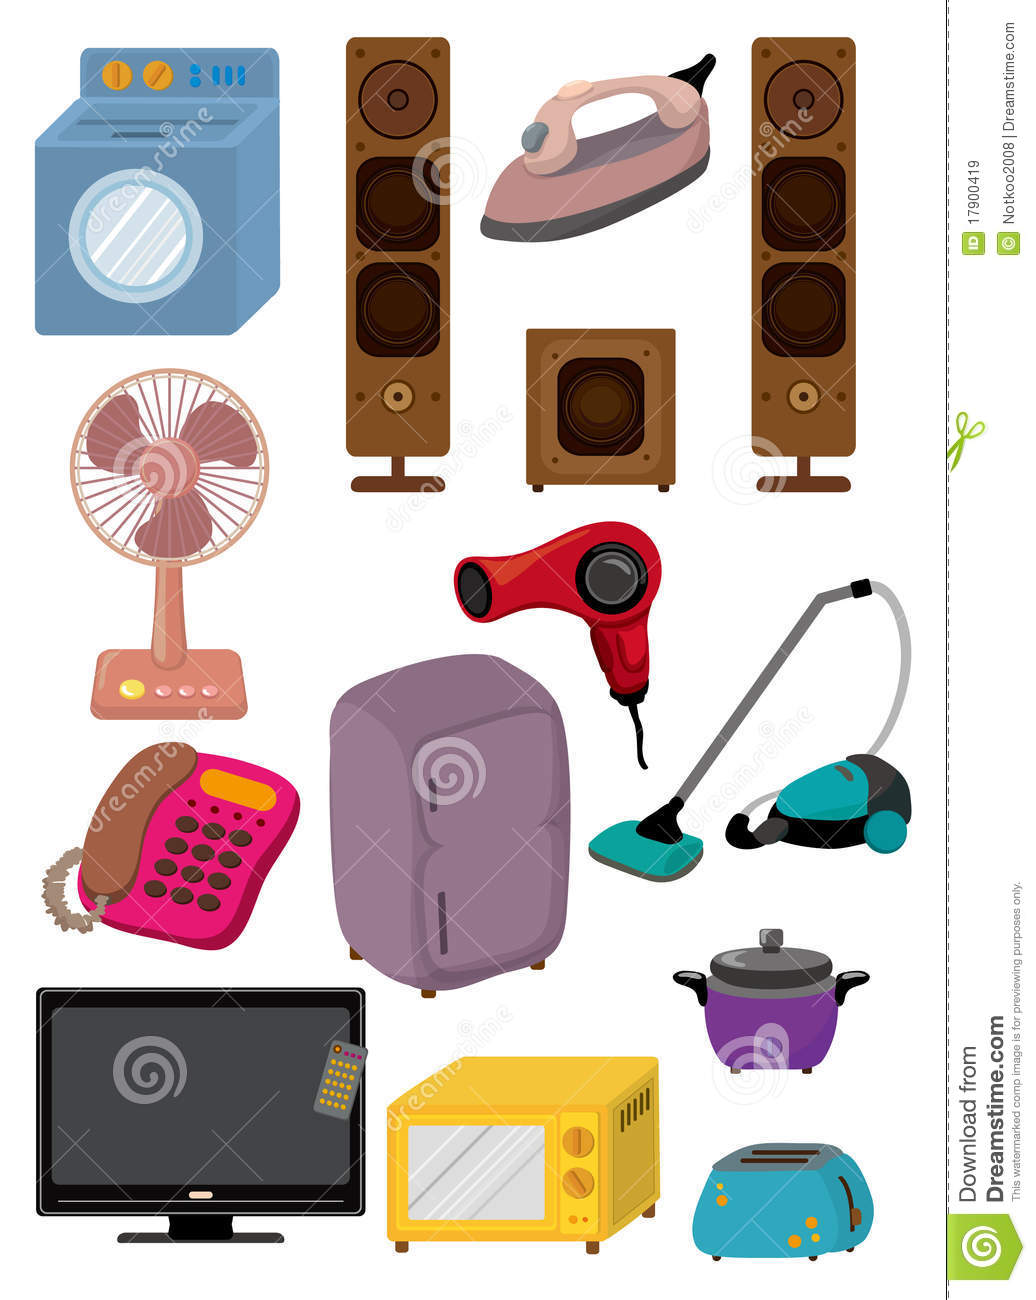 cartoon home appliance icon stock vector illustration of collection character 17900419. Black Bedroom Furniture Sets. Home Design Ideas